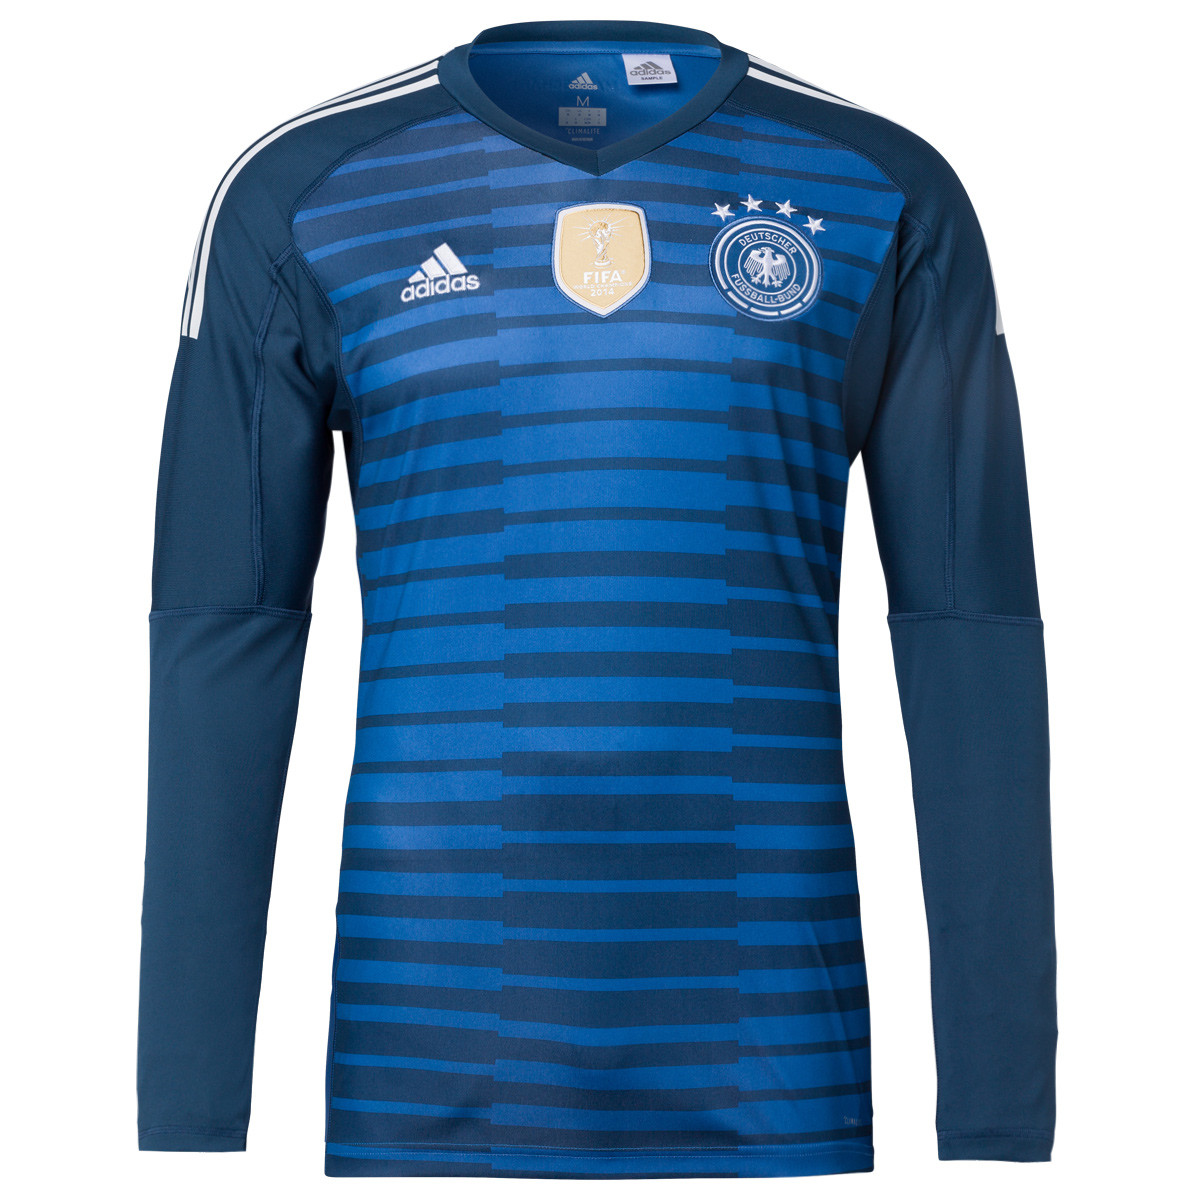 a6c401ba0 US$ 16.8 - Germany FIFA World Cup 2018 Goalkeeper Blue Jersey Long Sleeve  Men's - www.fcsoccerworld.com